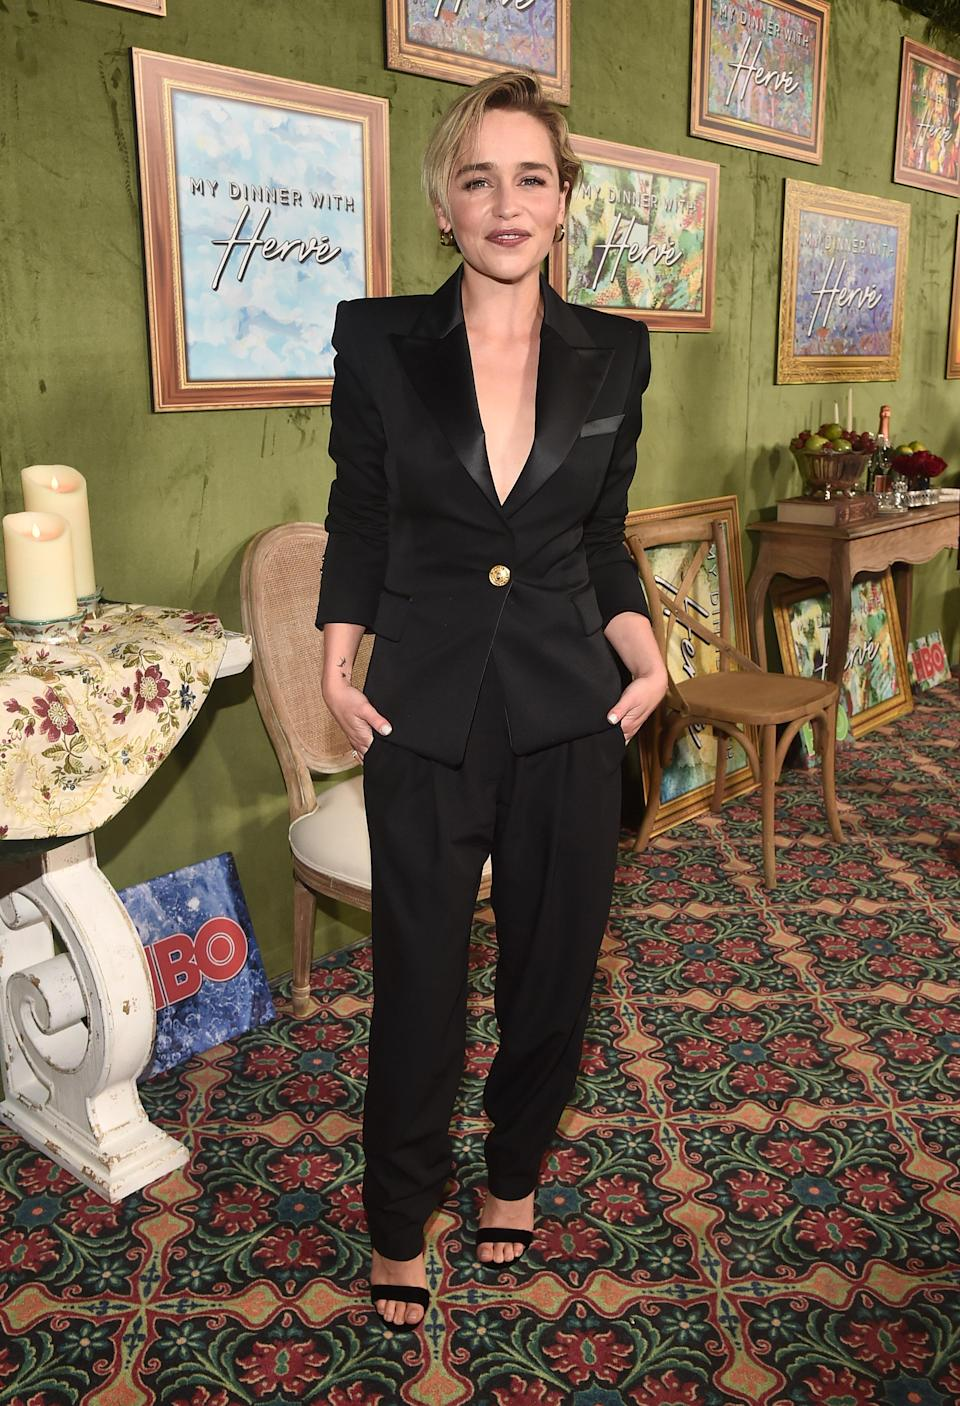 <p>Emilia Clarke looked sleek and sophisticated in a Balmain suit with open toe sandals at the HBO Films' premiere of 'My Dinner With Herve' at the Paramount Studios in Hollywood, California. <i>[Photo: Getty]</i> </p>